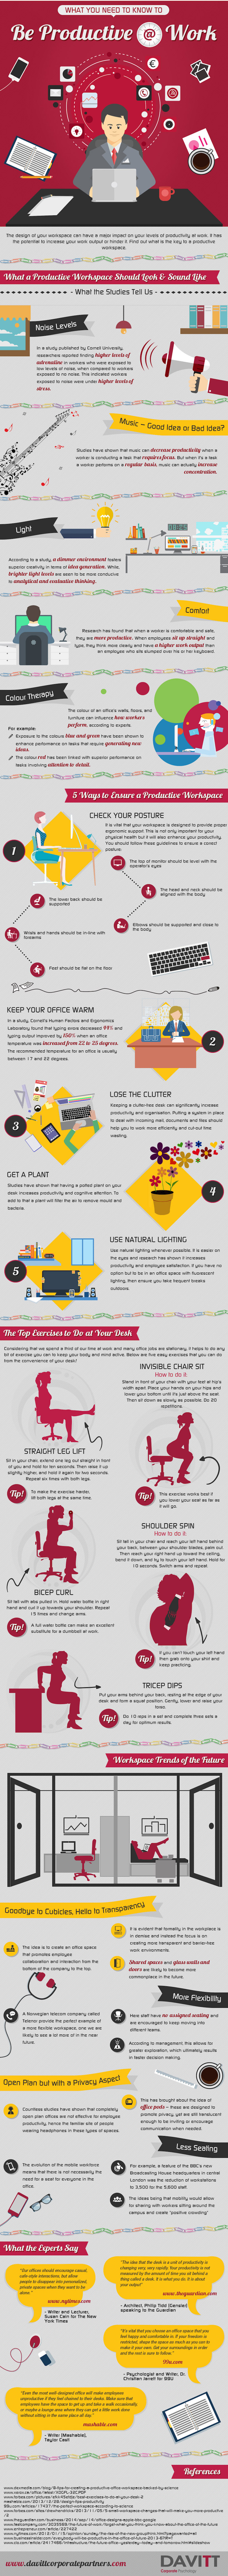 How to Be More Productive at Work Infographic